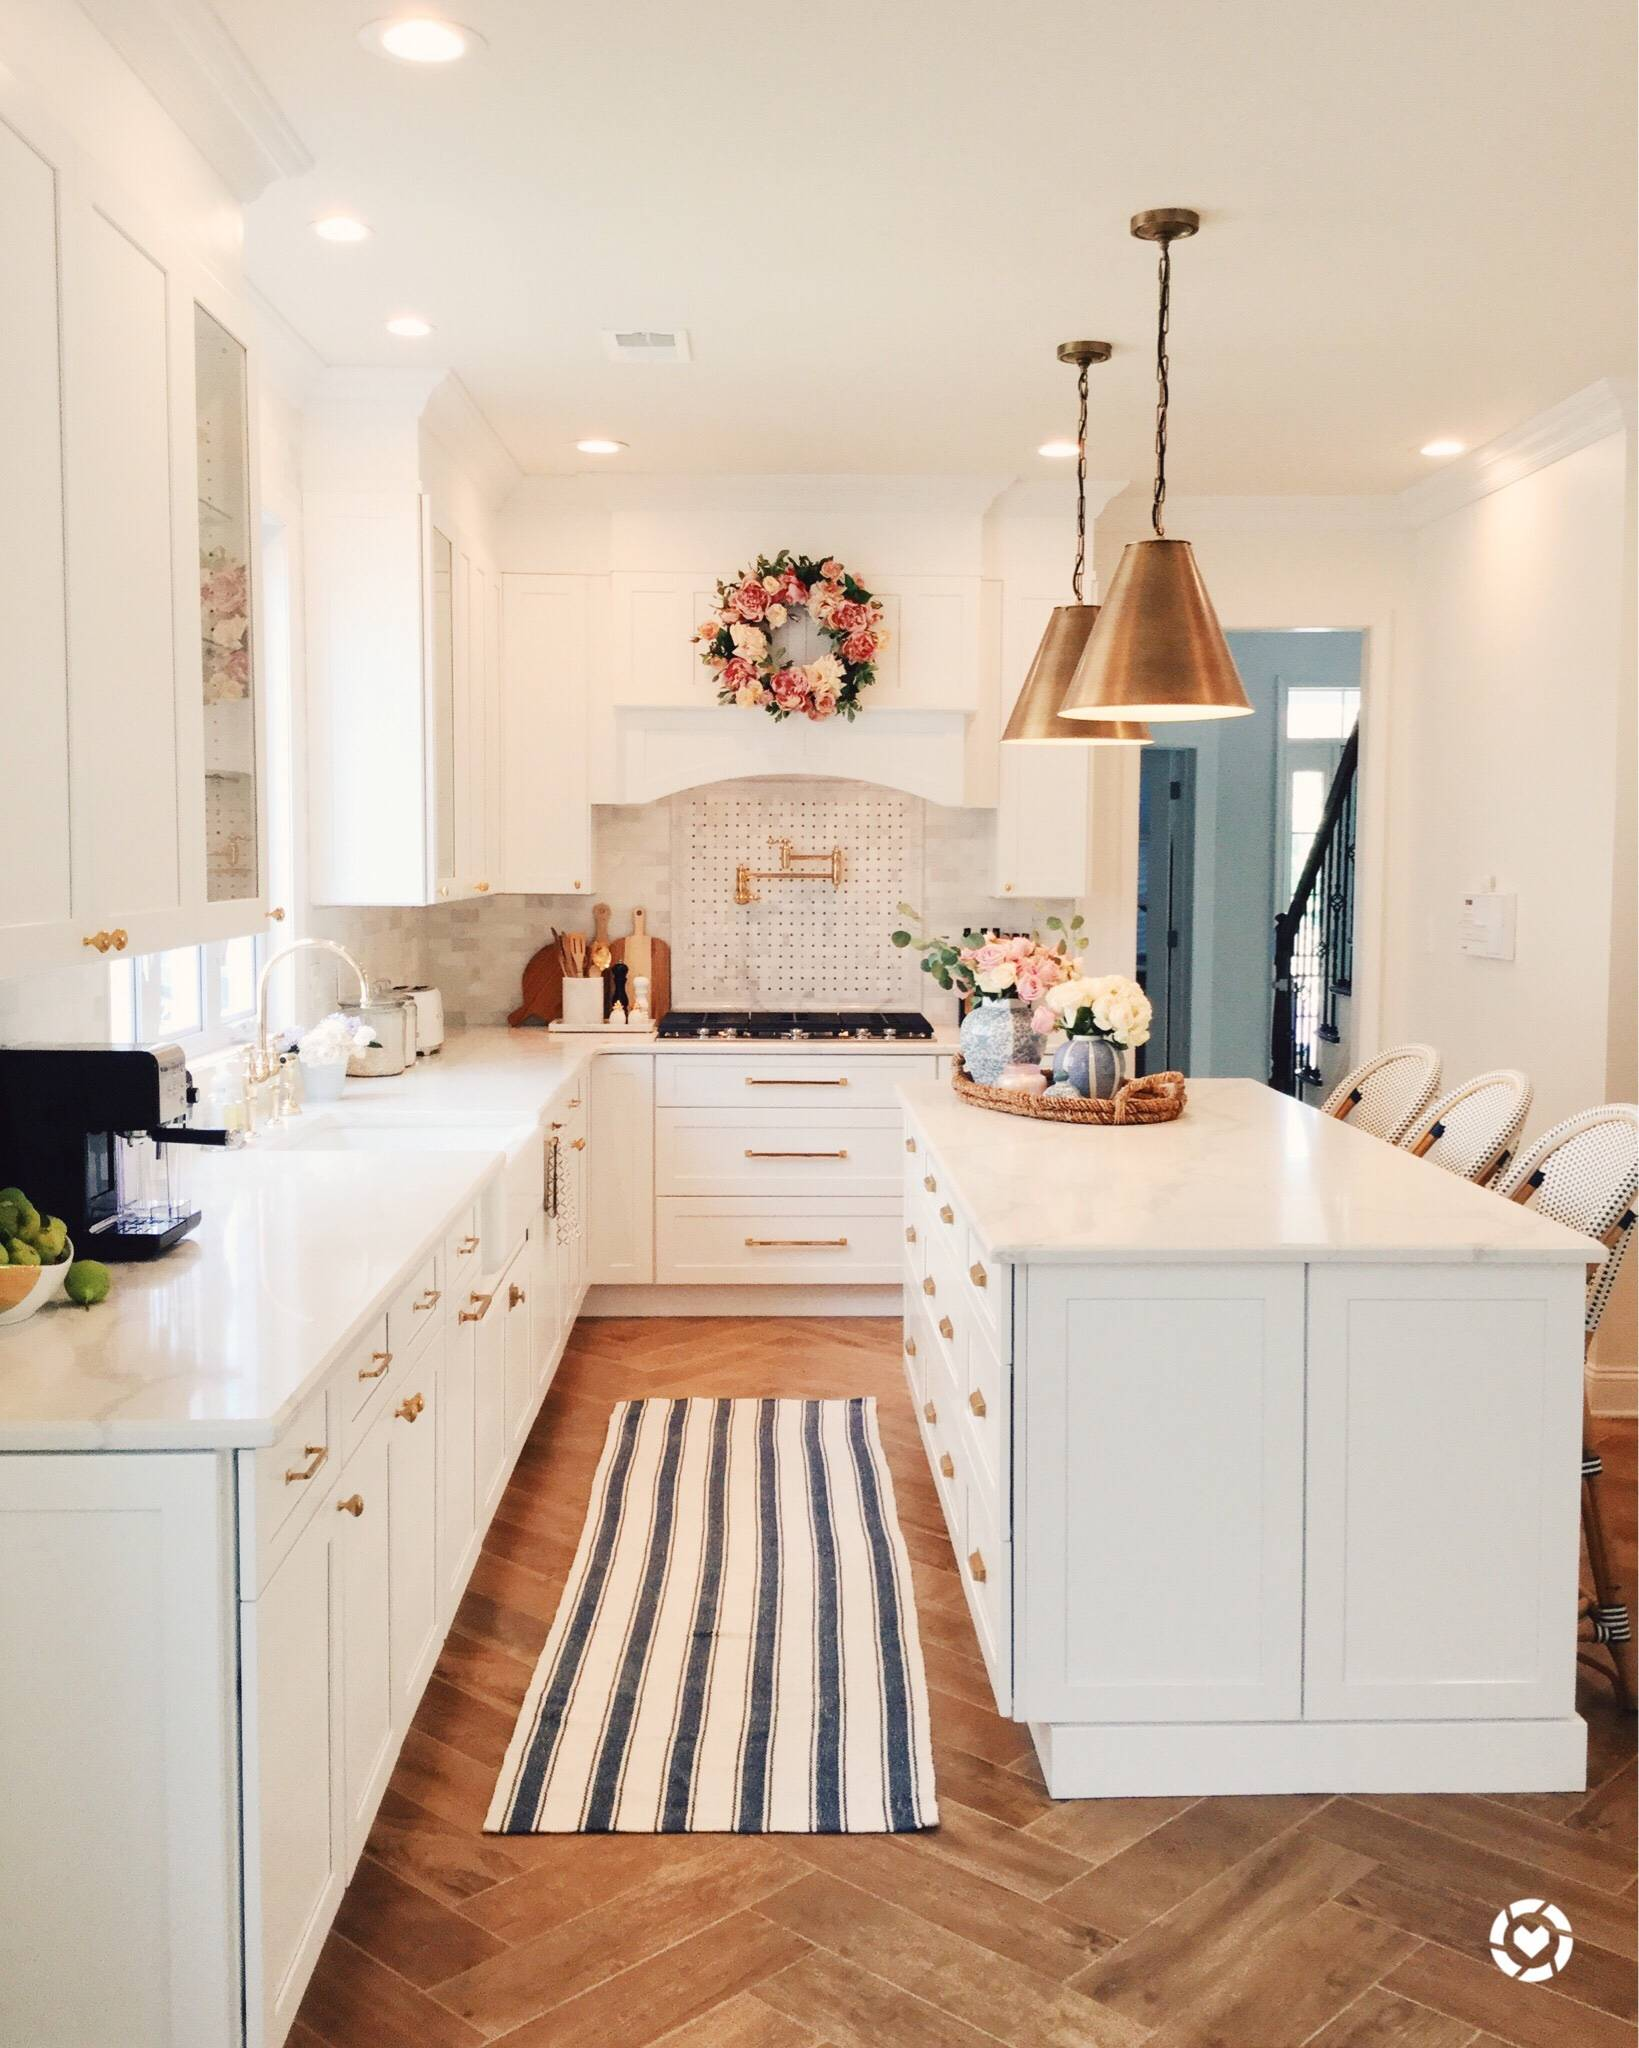 Kitchen Cabinets And Countertops Cost: Kitchen Renovation Steps: Herringbone Floors, White